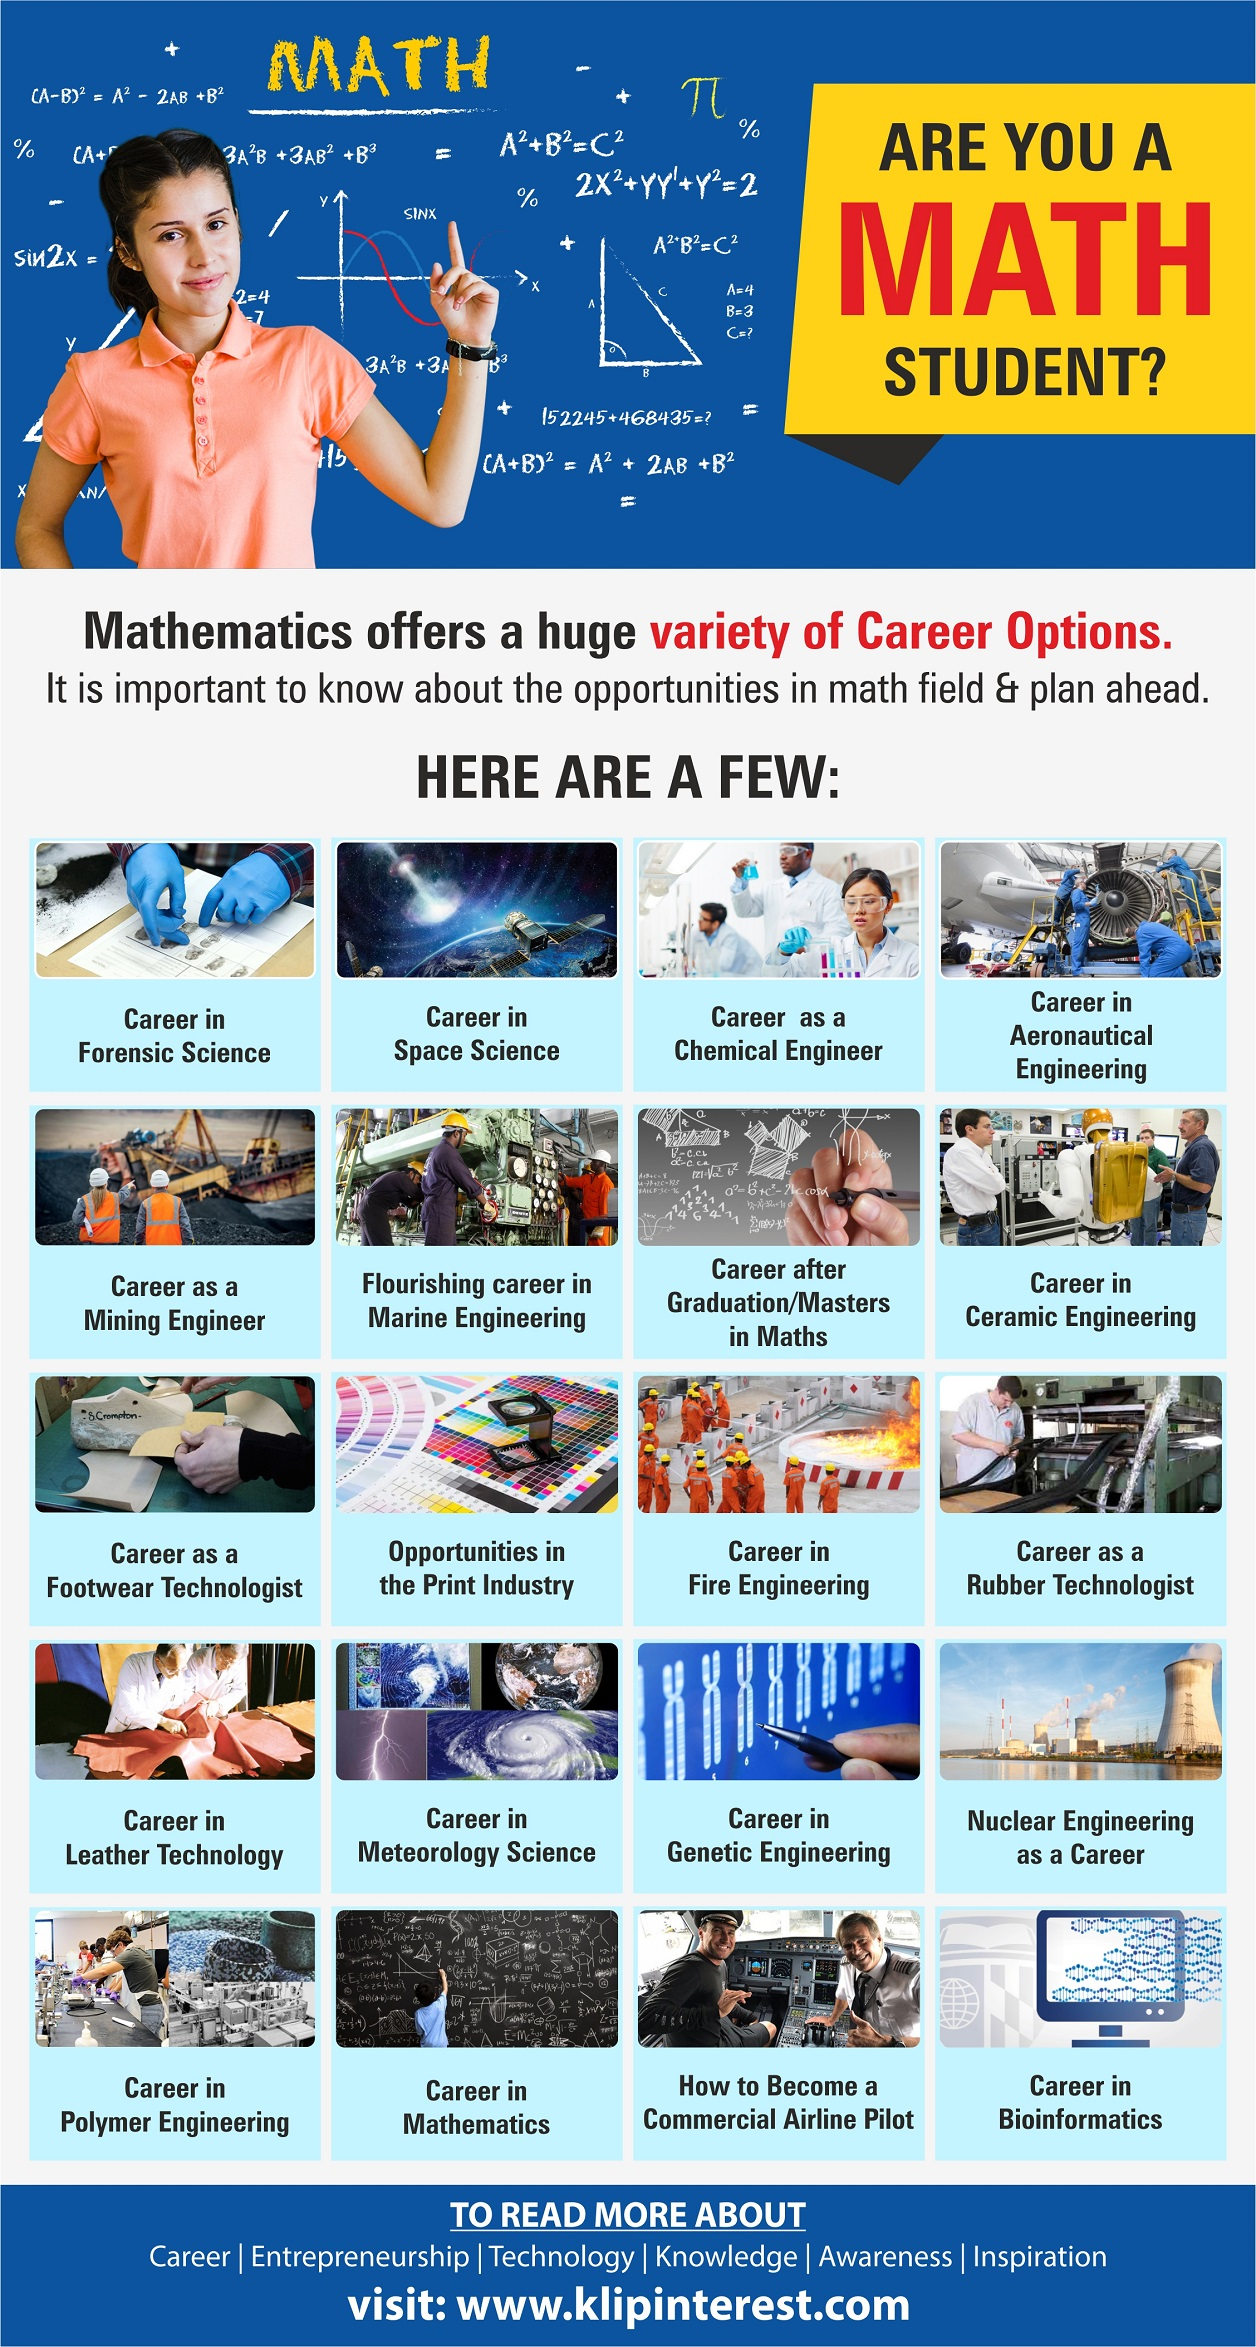 career options available to maths students after 12th